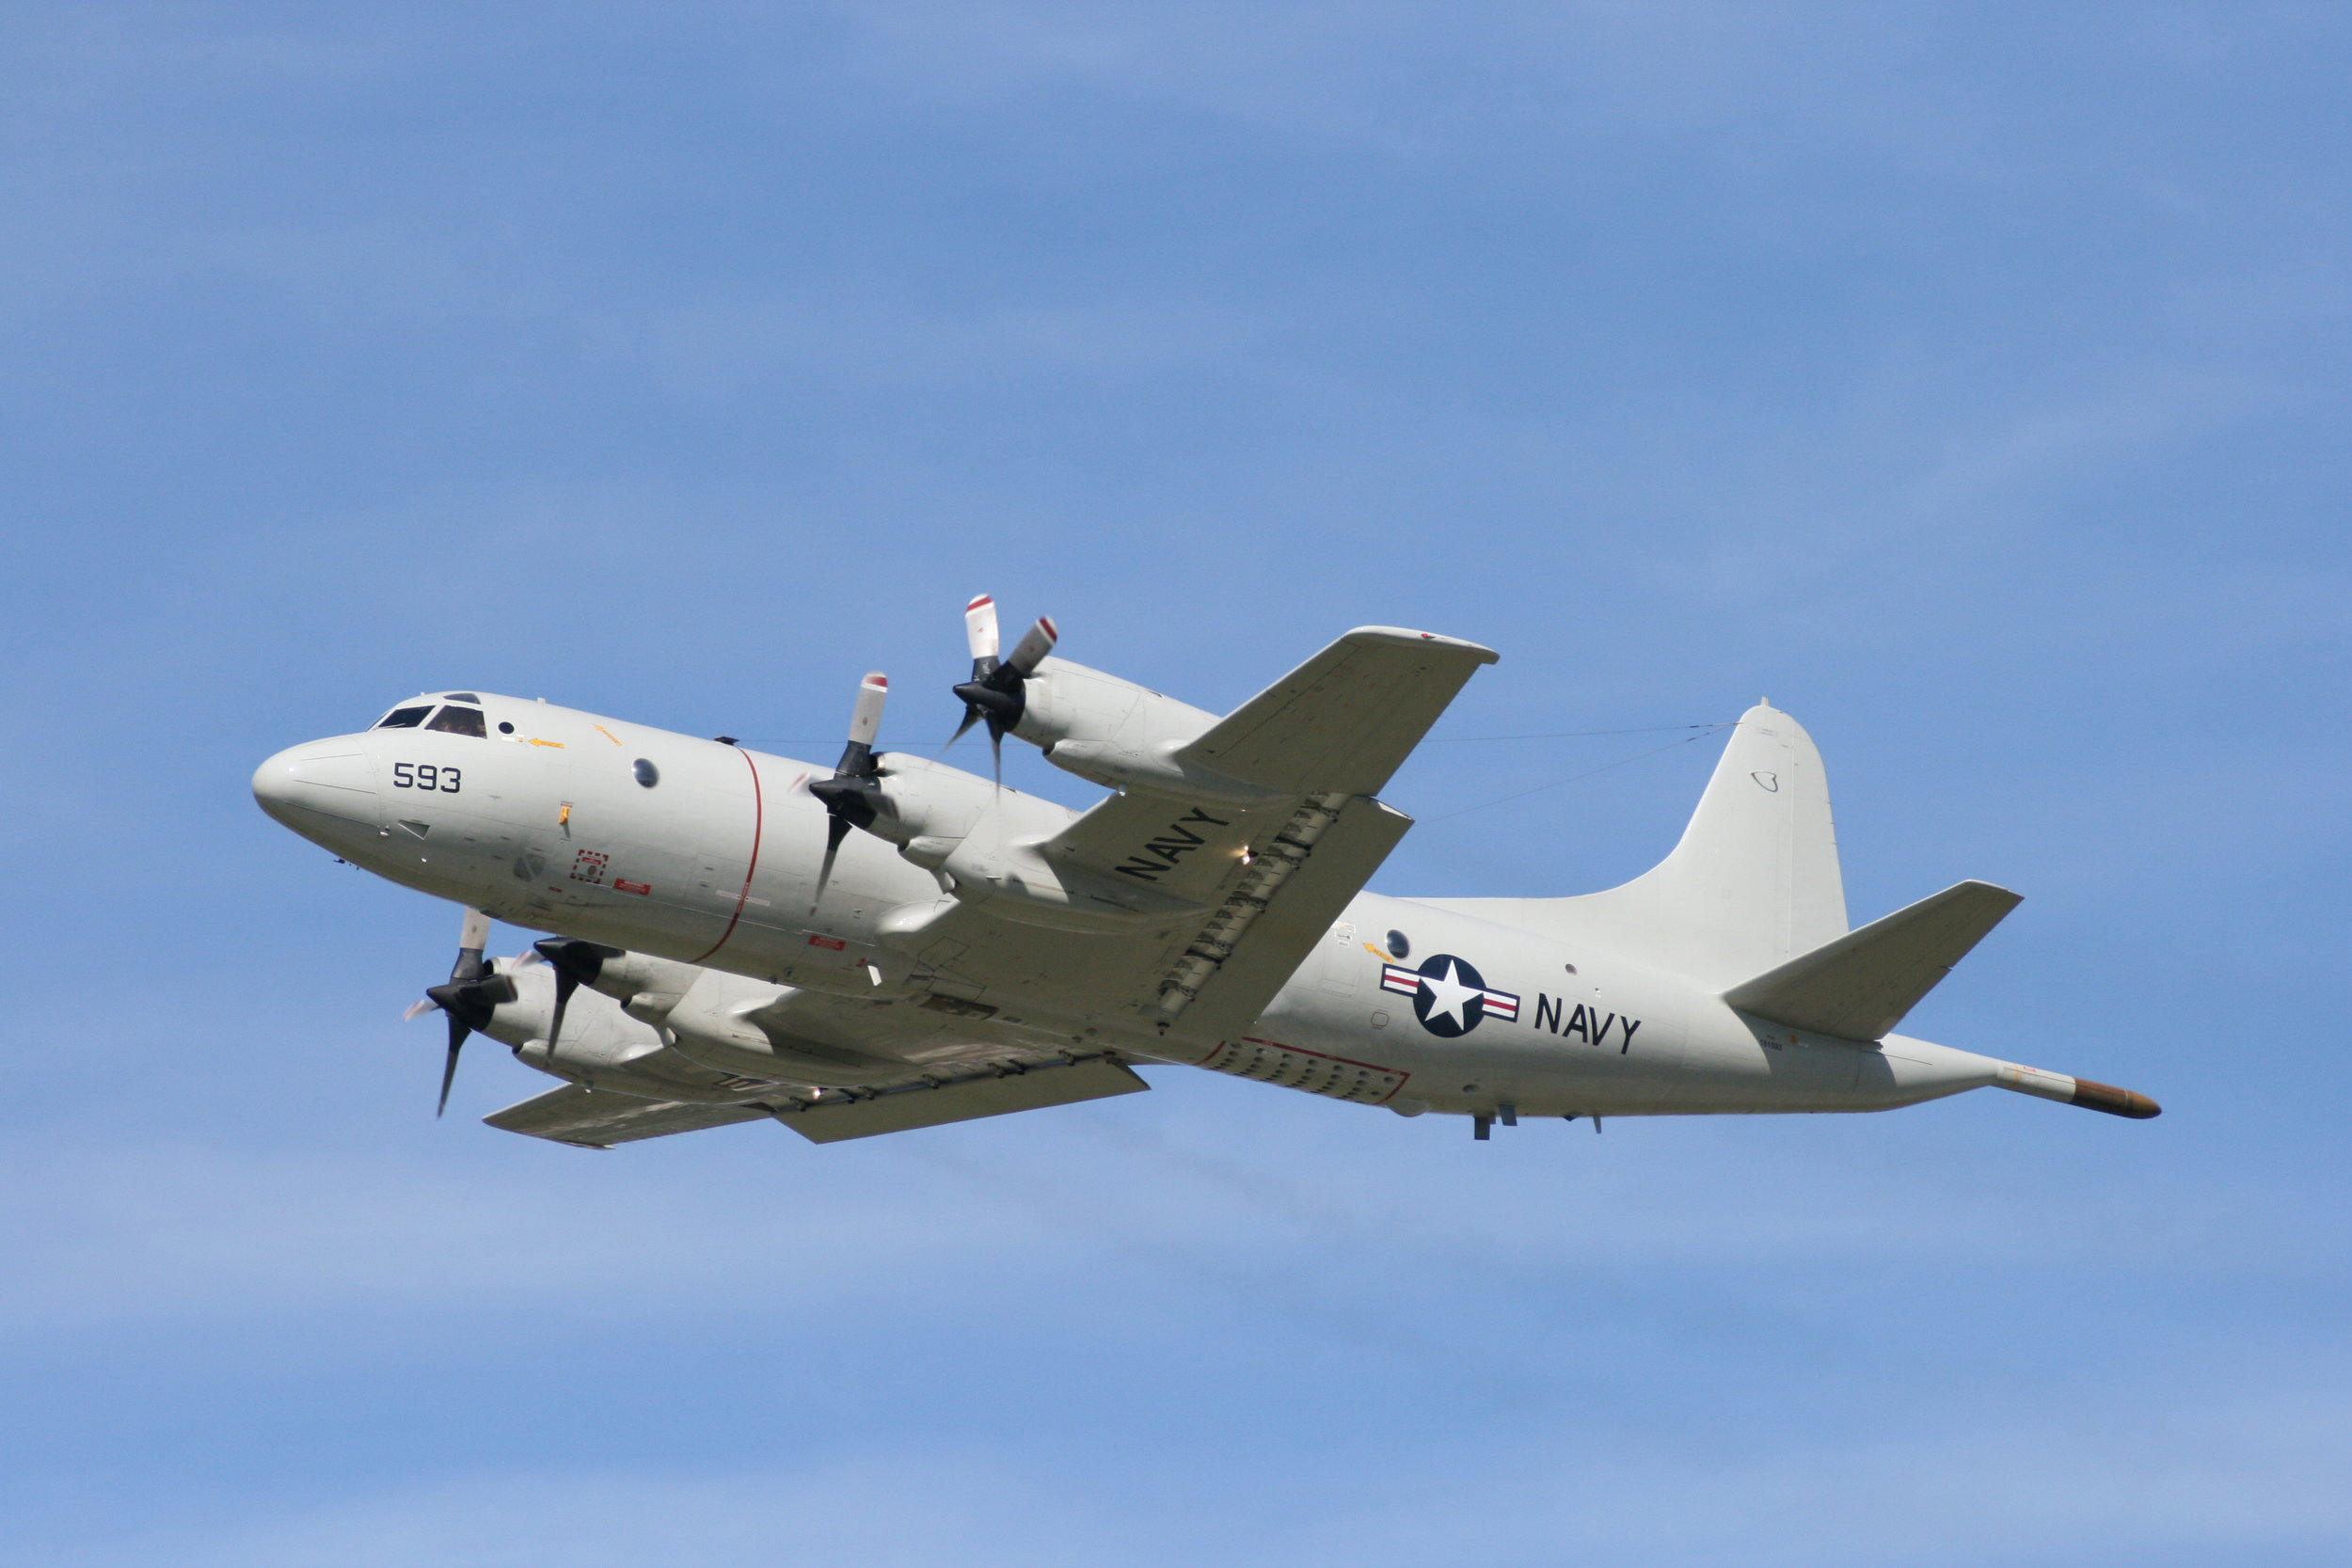 P-3 Orion of the USN